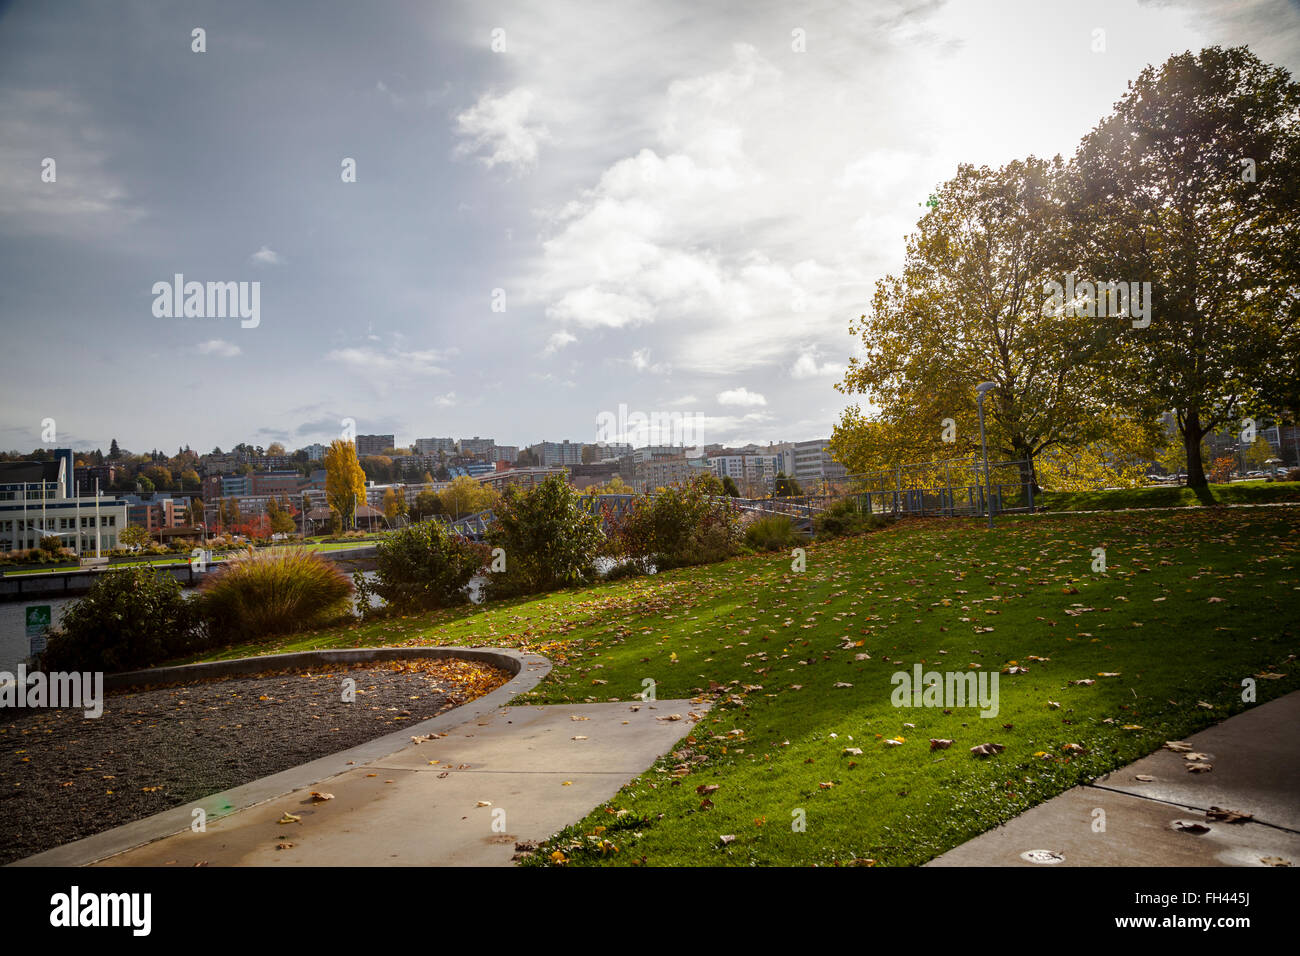 Lake union park, Seattle, Washington State - Stock Image